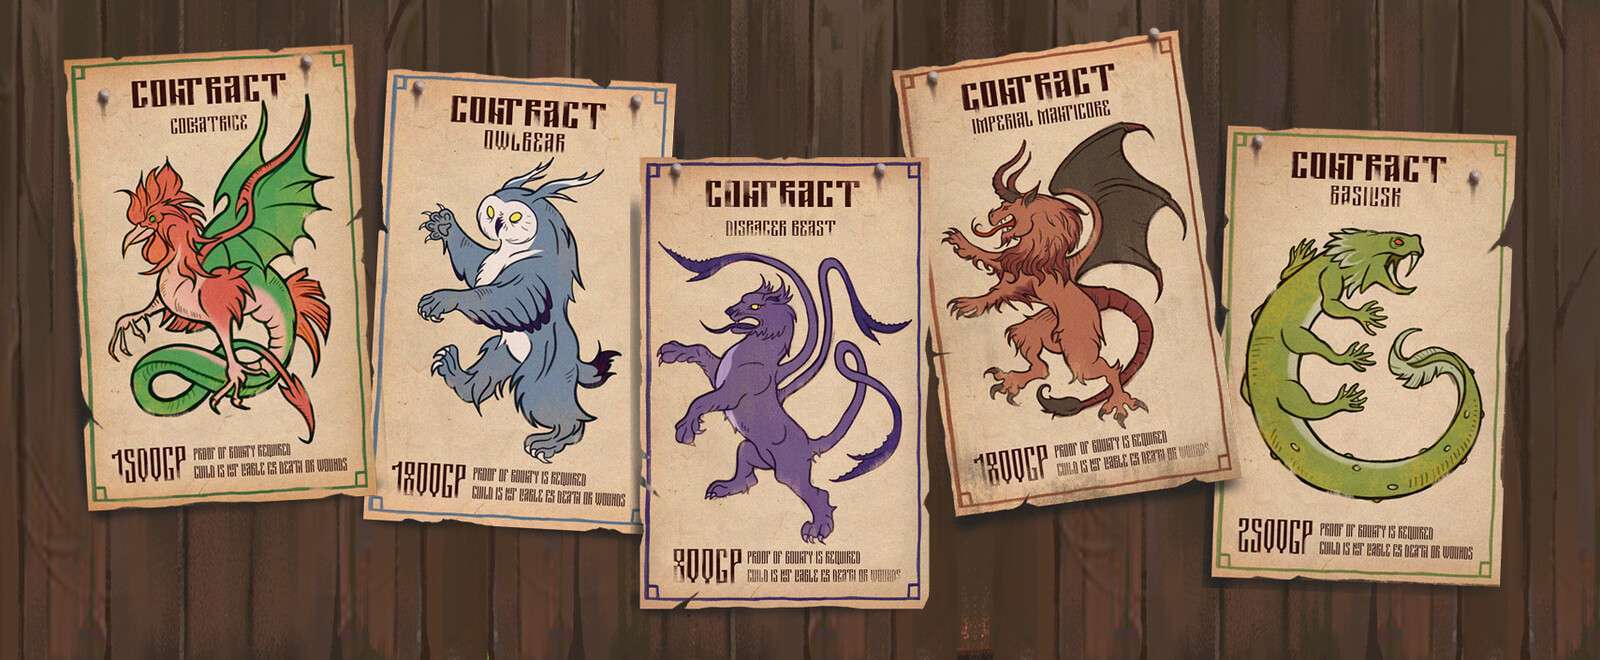 A few of the custom poster designs showing different creature contracts.